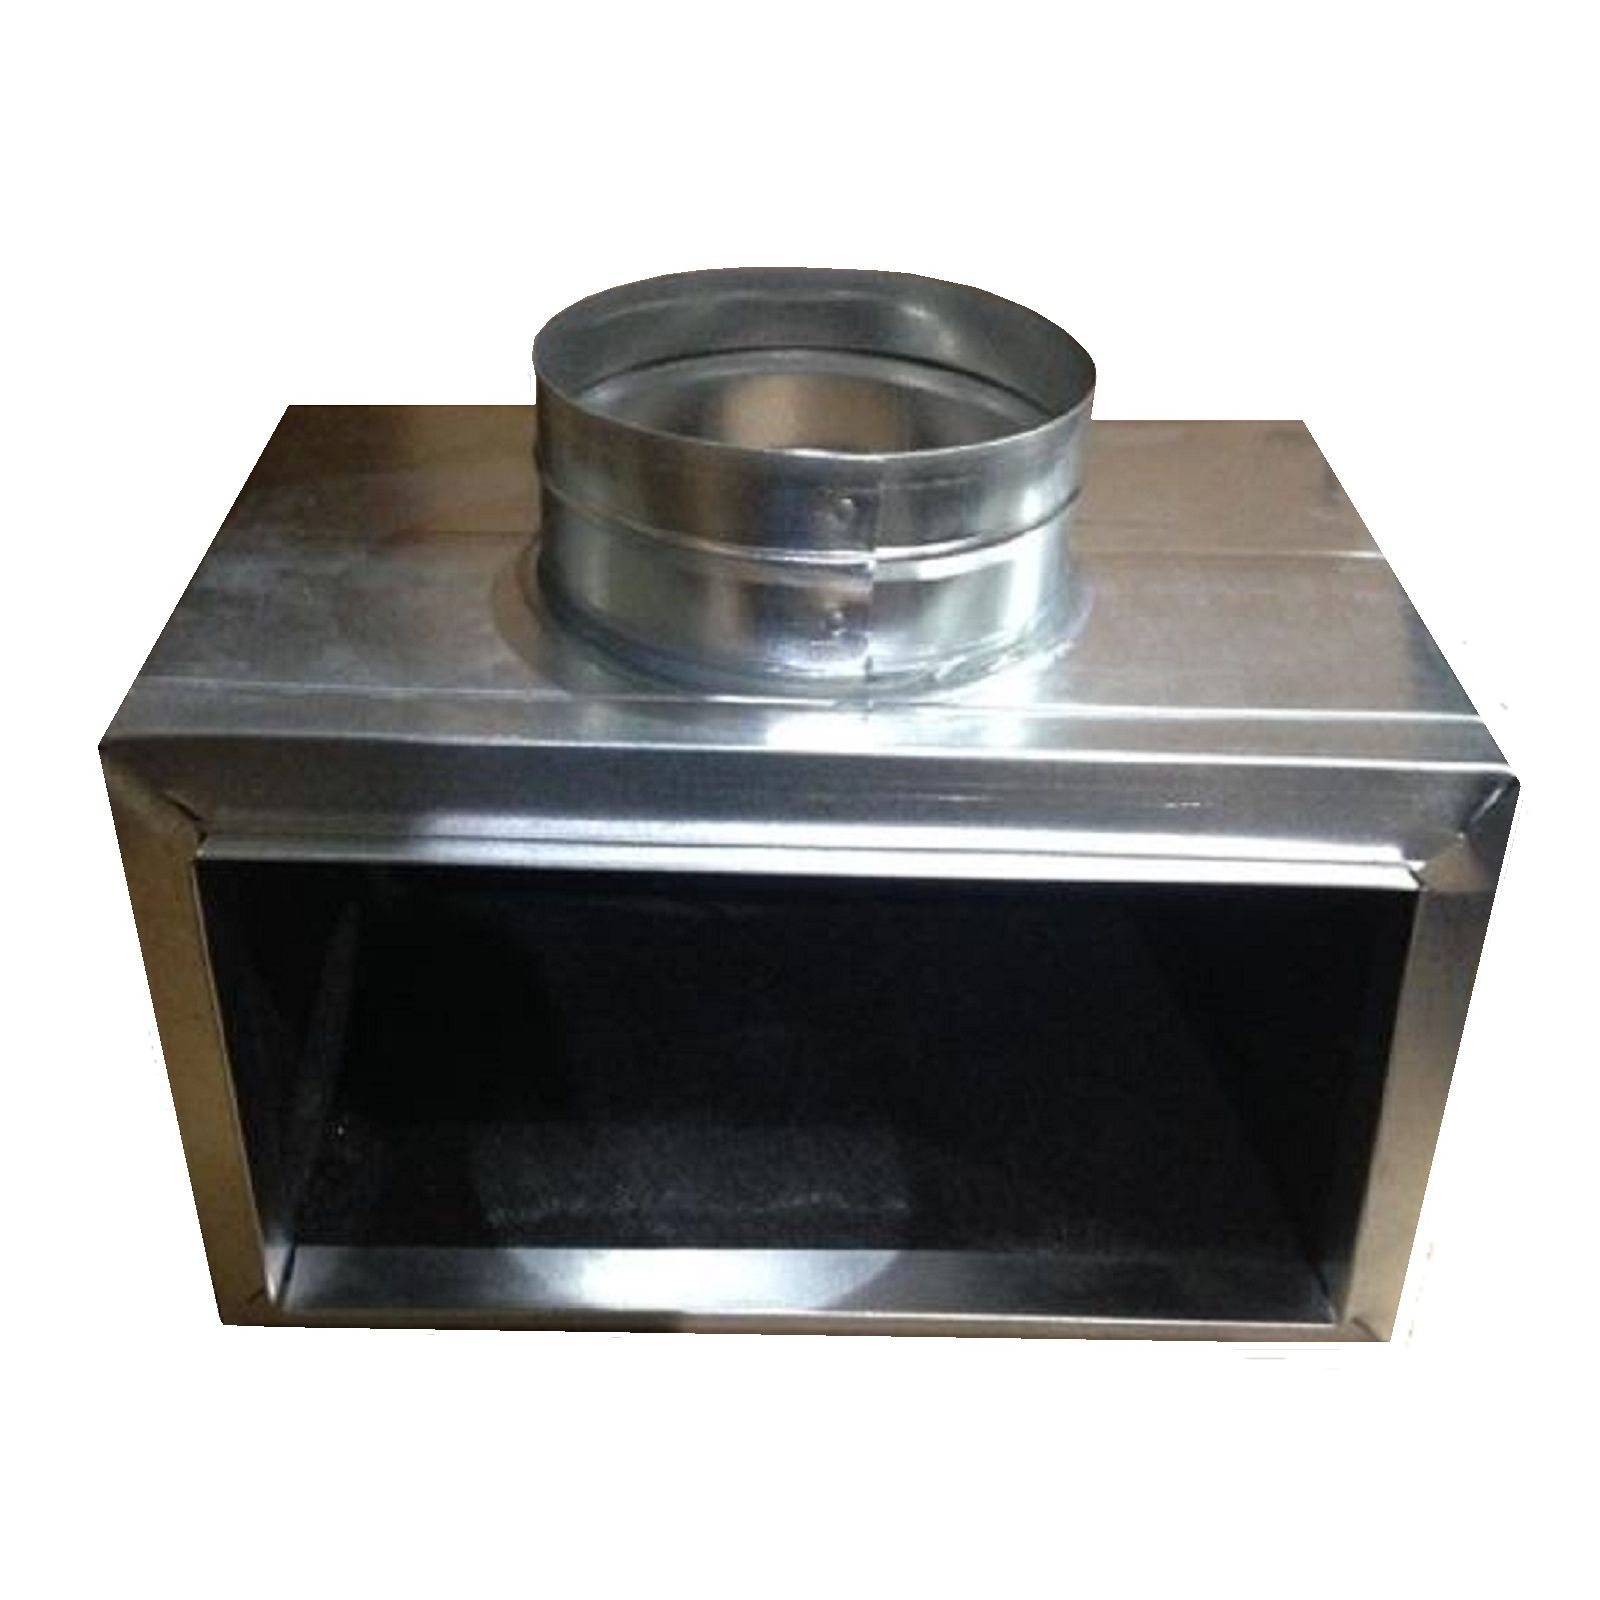 "Snap-Rite 14X06X083109NF - Side-Out Box Non-Flanged 9"" Deep, 14"" x 6"" x 8"" - R4"